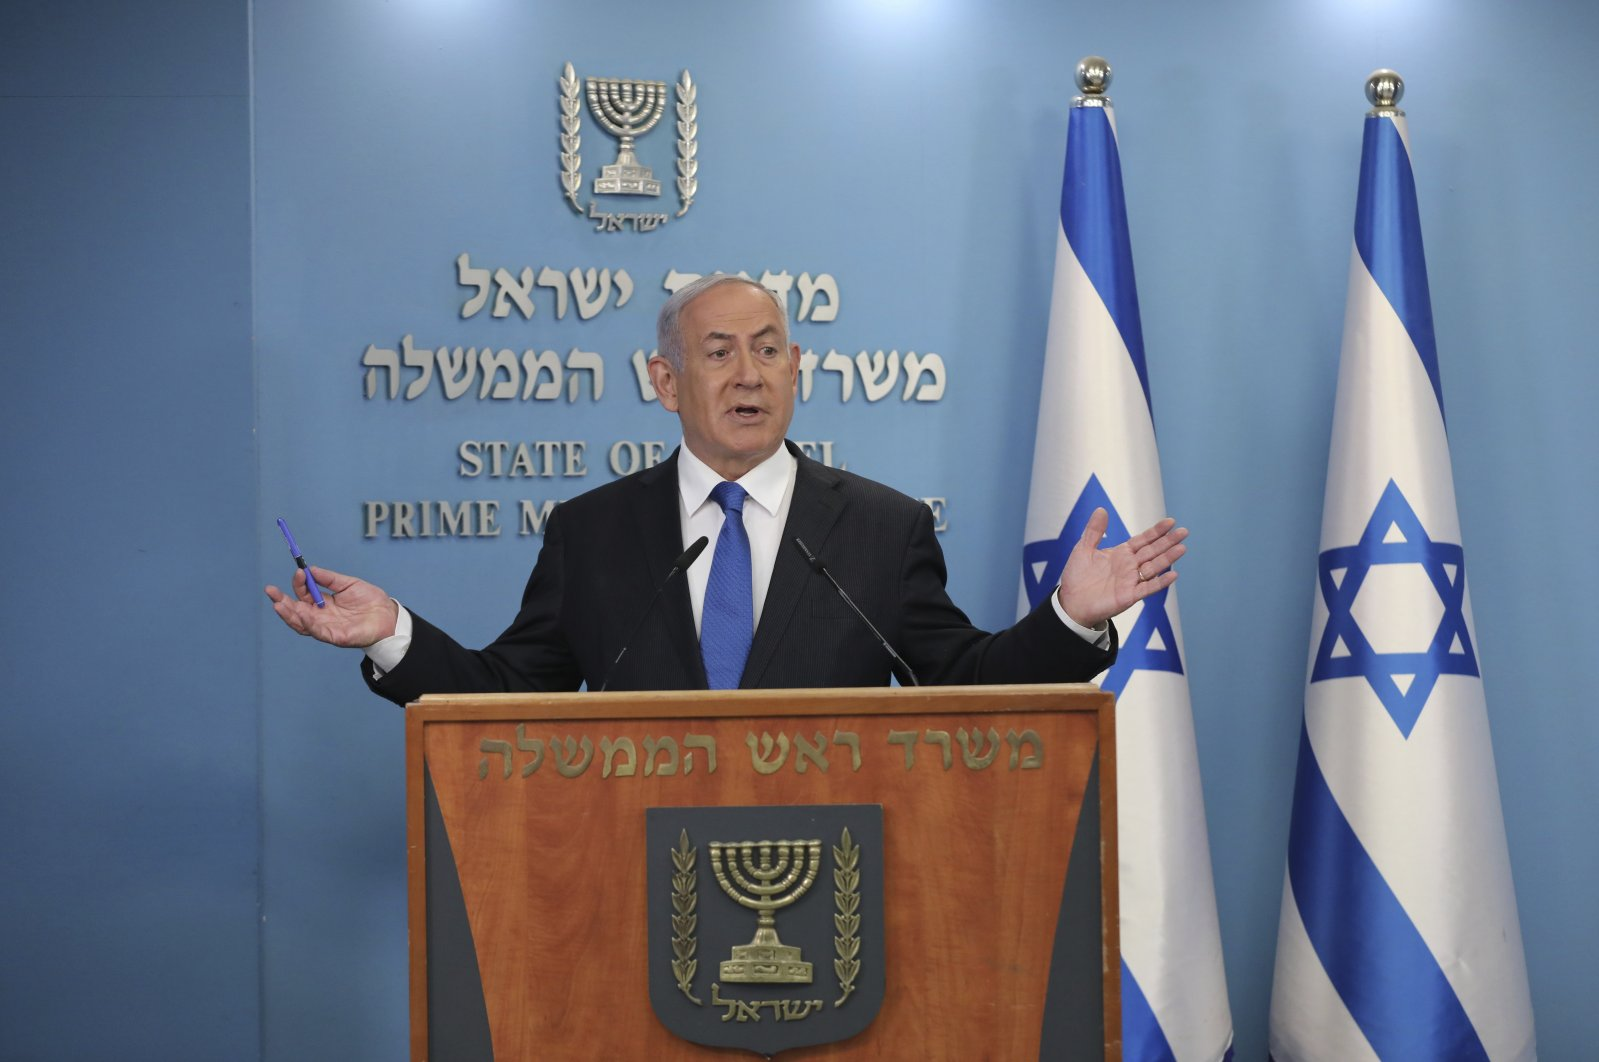 Israeli Prime Minister Benjamin Netanyahu speaks during a news conference, Jerusalem, Aug. 13, 2020. (AP Photo)